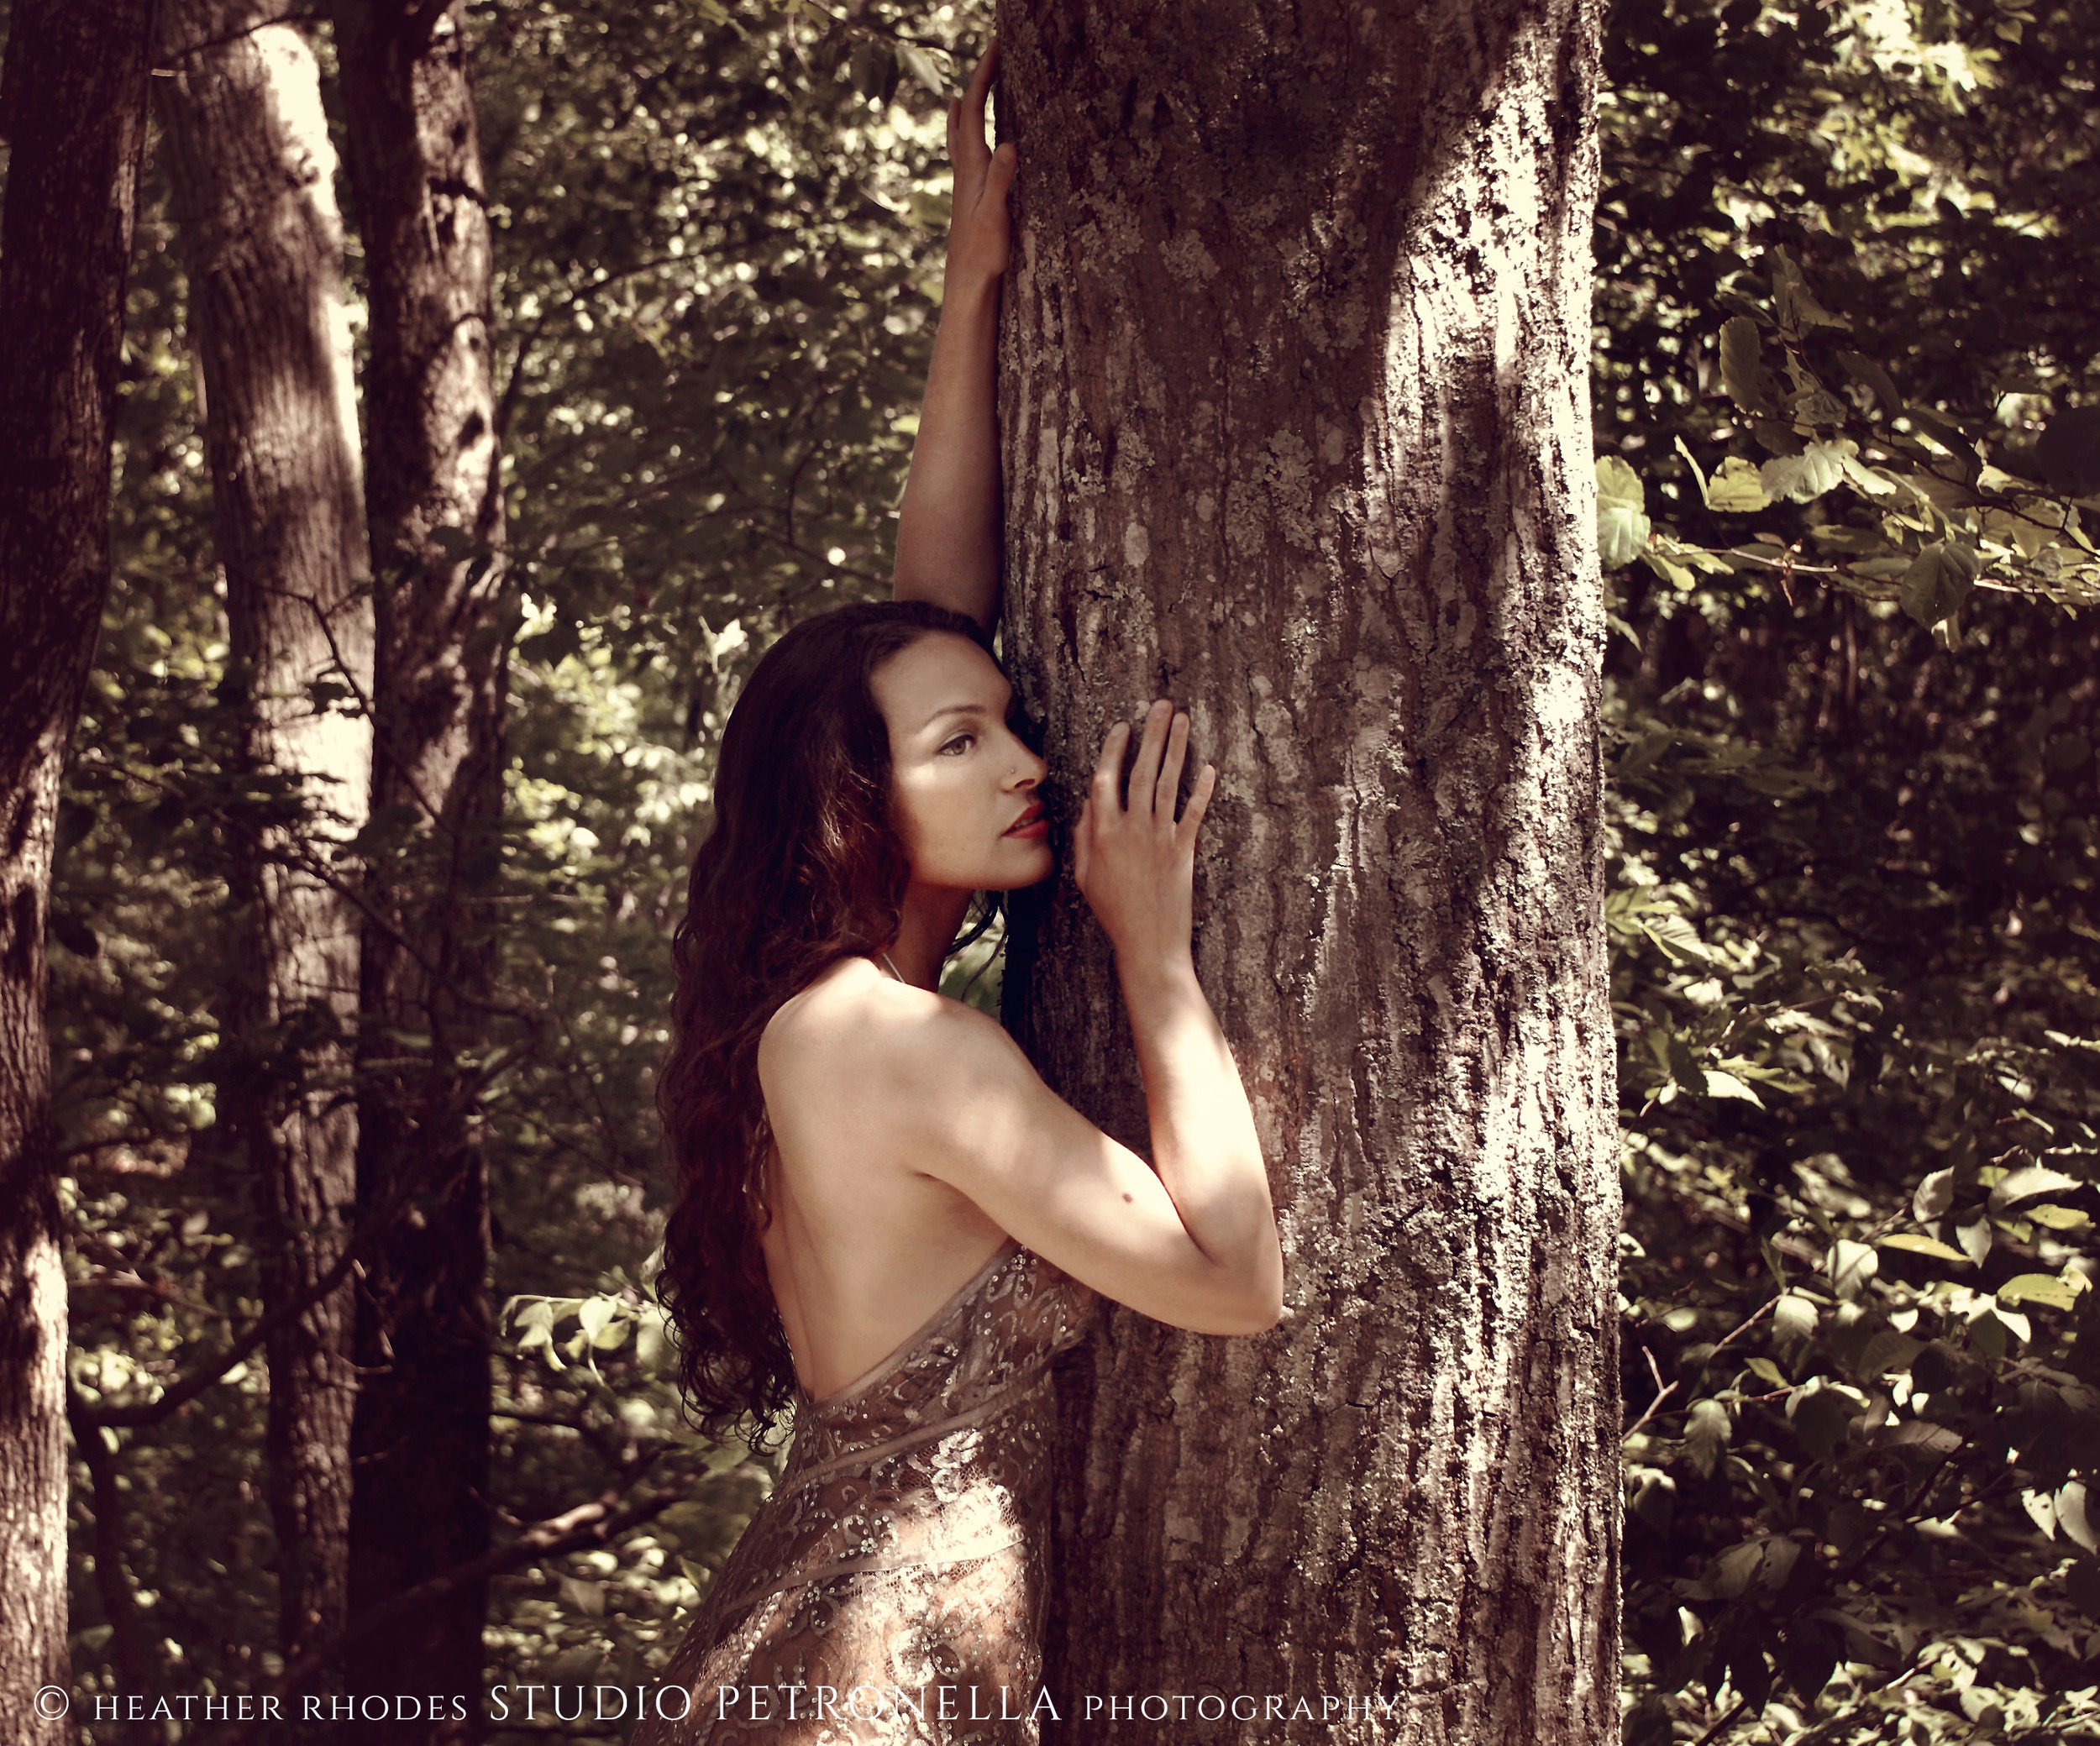 emily in the woods 1 © heather rhodes studio petronella all rights reserved.jpg